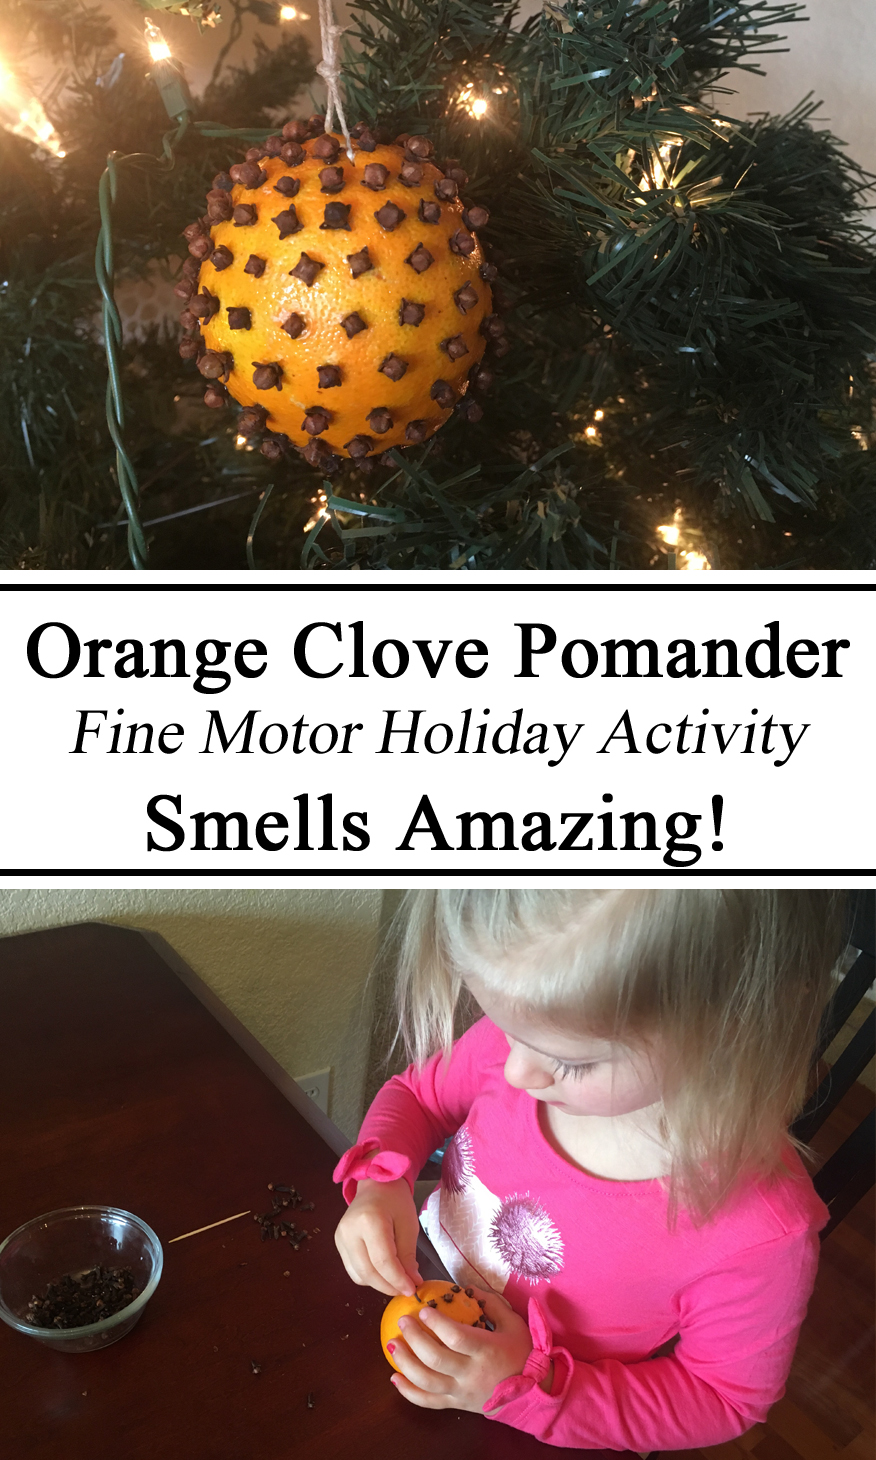 Orange Clove Pomander, Fine Motor Holiday Activity, Toddlers, Preschool, Kids, Christmas Holiday Traditions, French, Hands on Learning, Creative, Crafts, Montessori, Homeschool, Homeschooling, Hands on, Totschooling, Creative